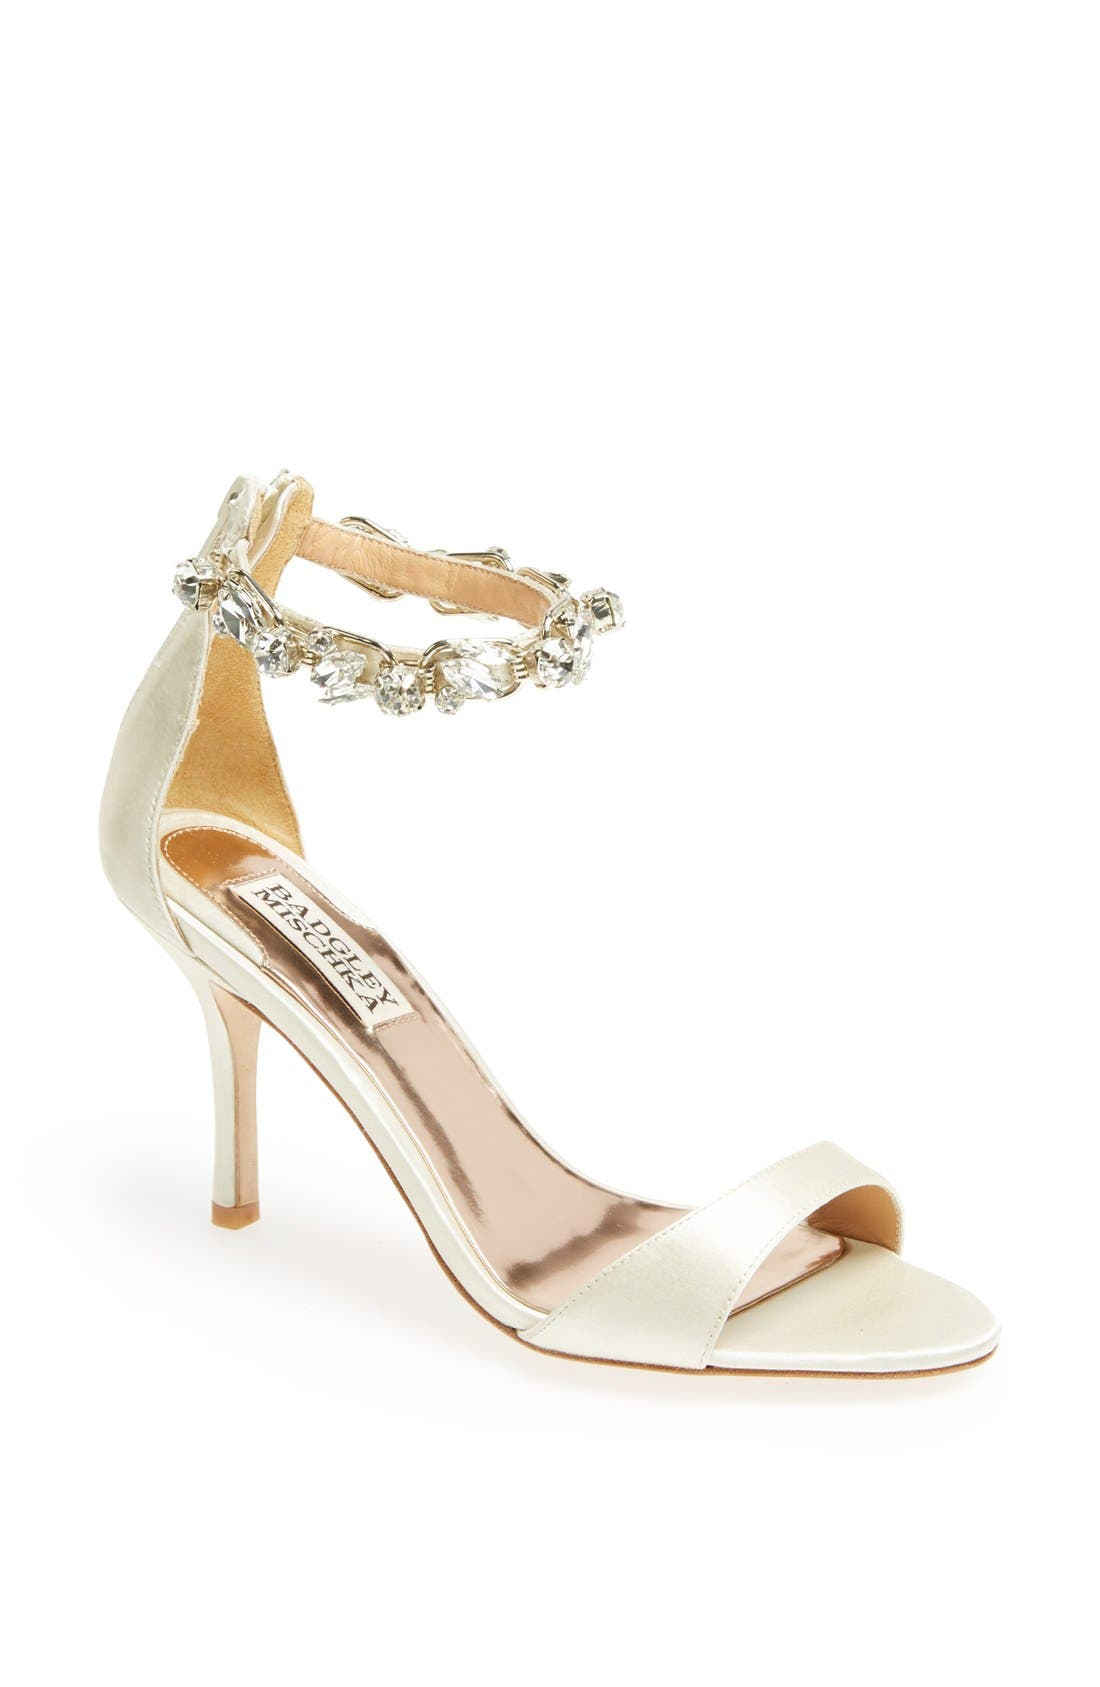 Main Image - Badgley Mischka 'Klark' Satin Sandal